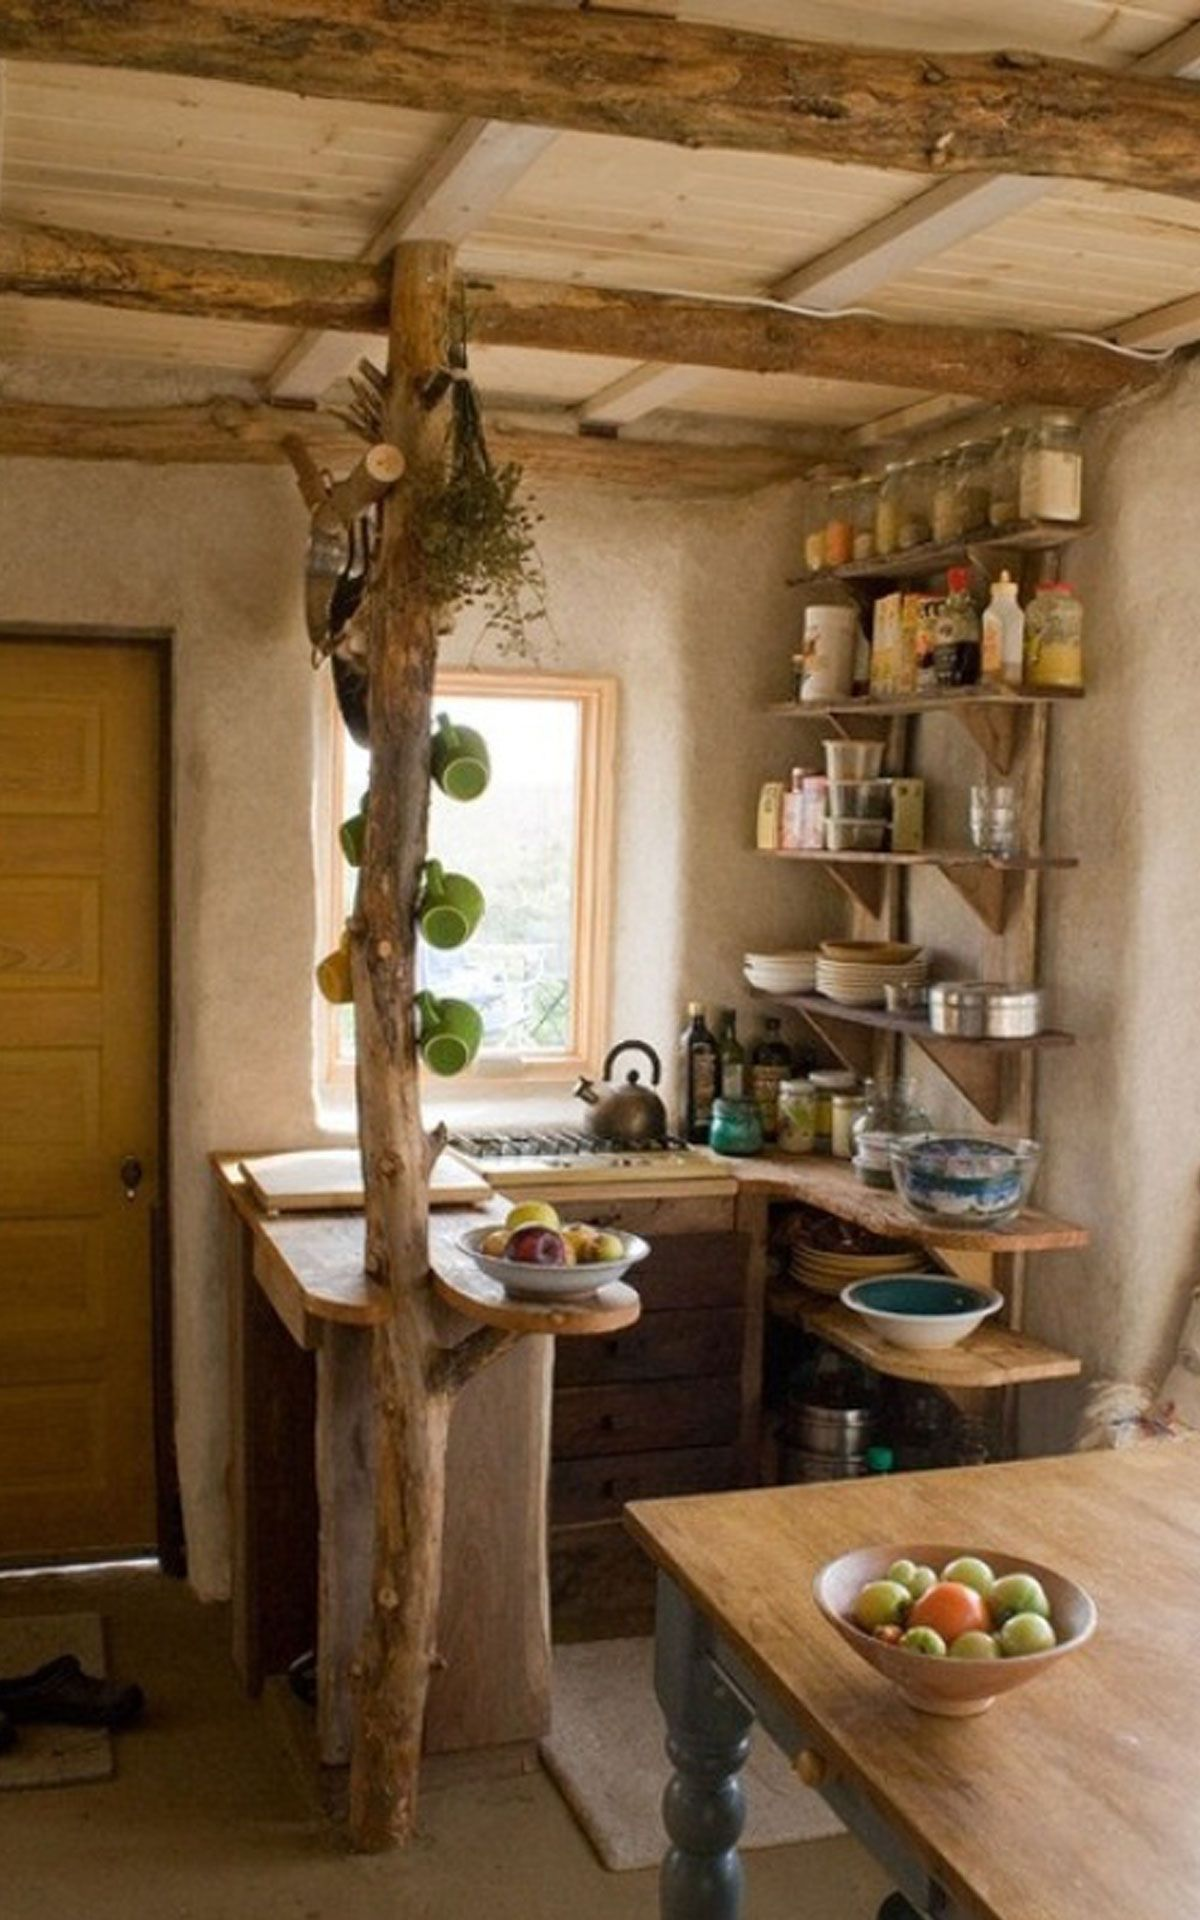 Creative Kitchen Design Brilliant Wooden Creative Kitchen Creative Kitchen Design Ideas  Tiny Home Design Inspiration